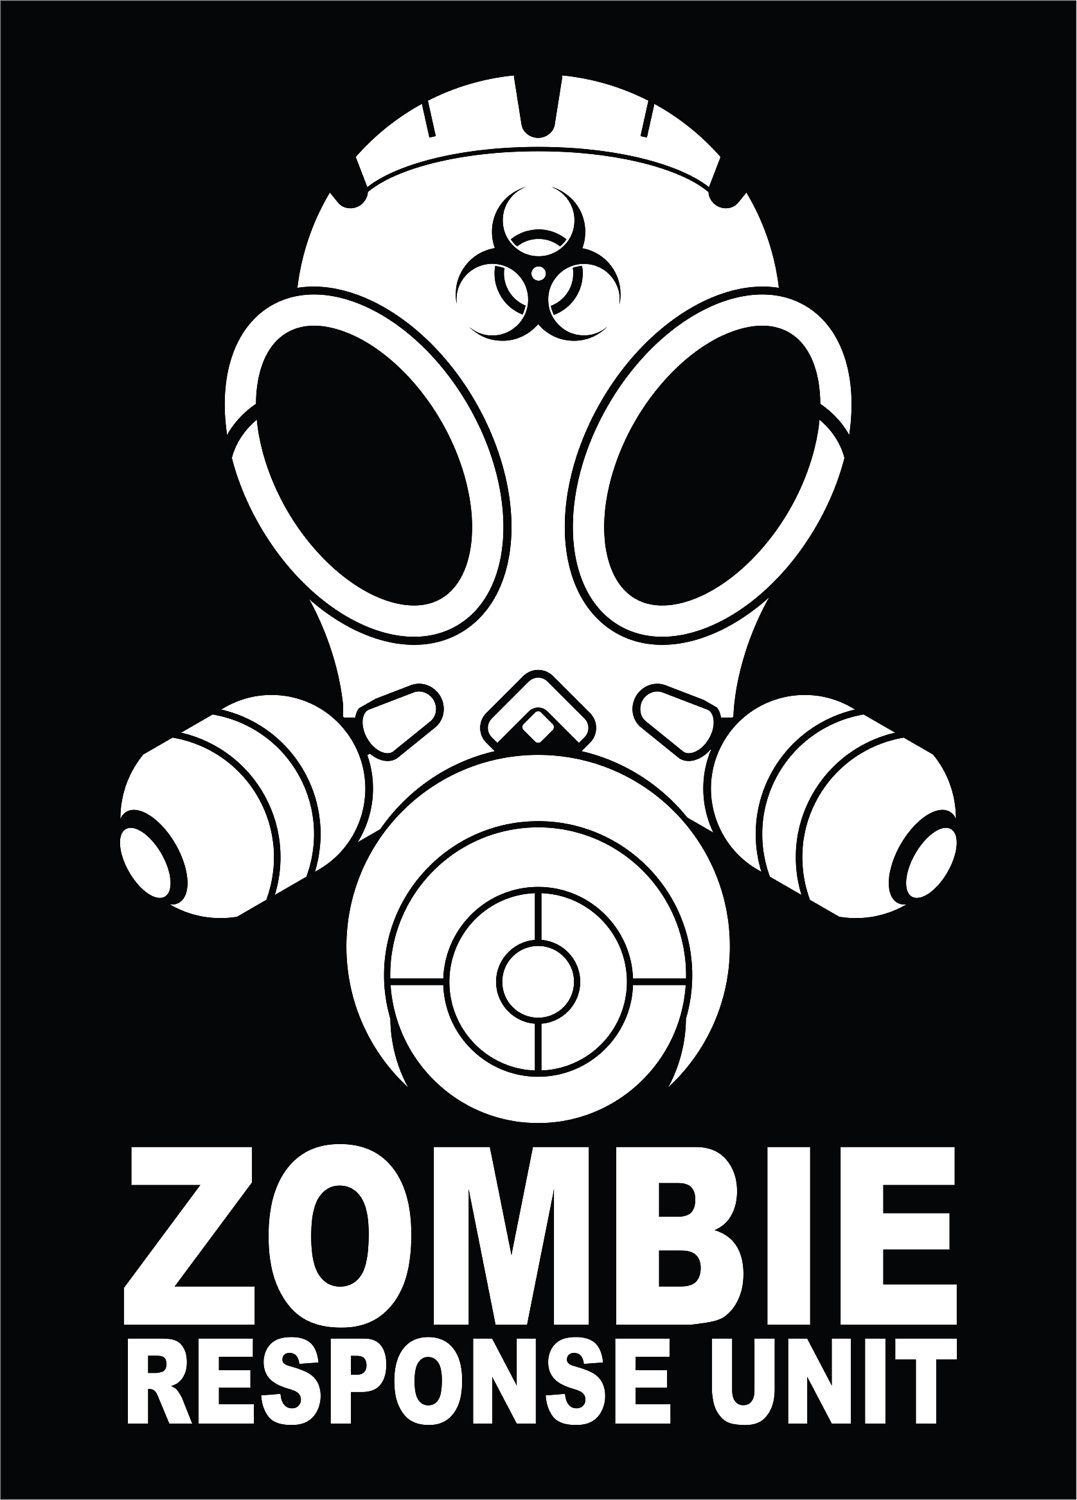 Zombie Response Unit Vinyl Decal Sticker Fun Pinterest